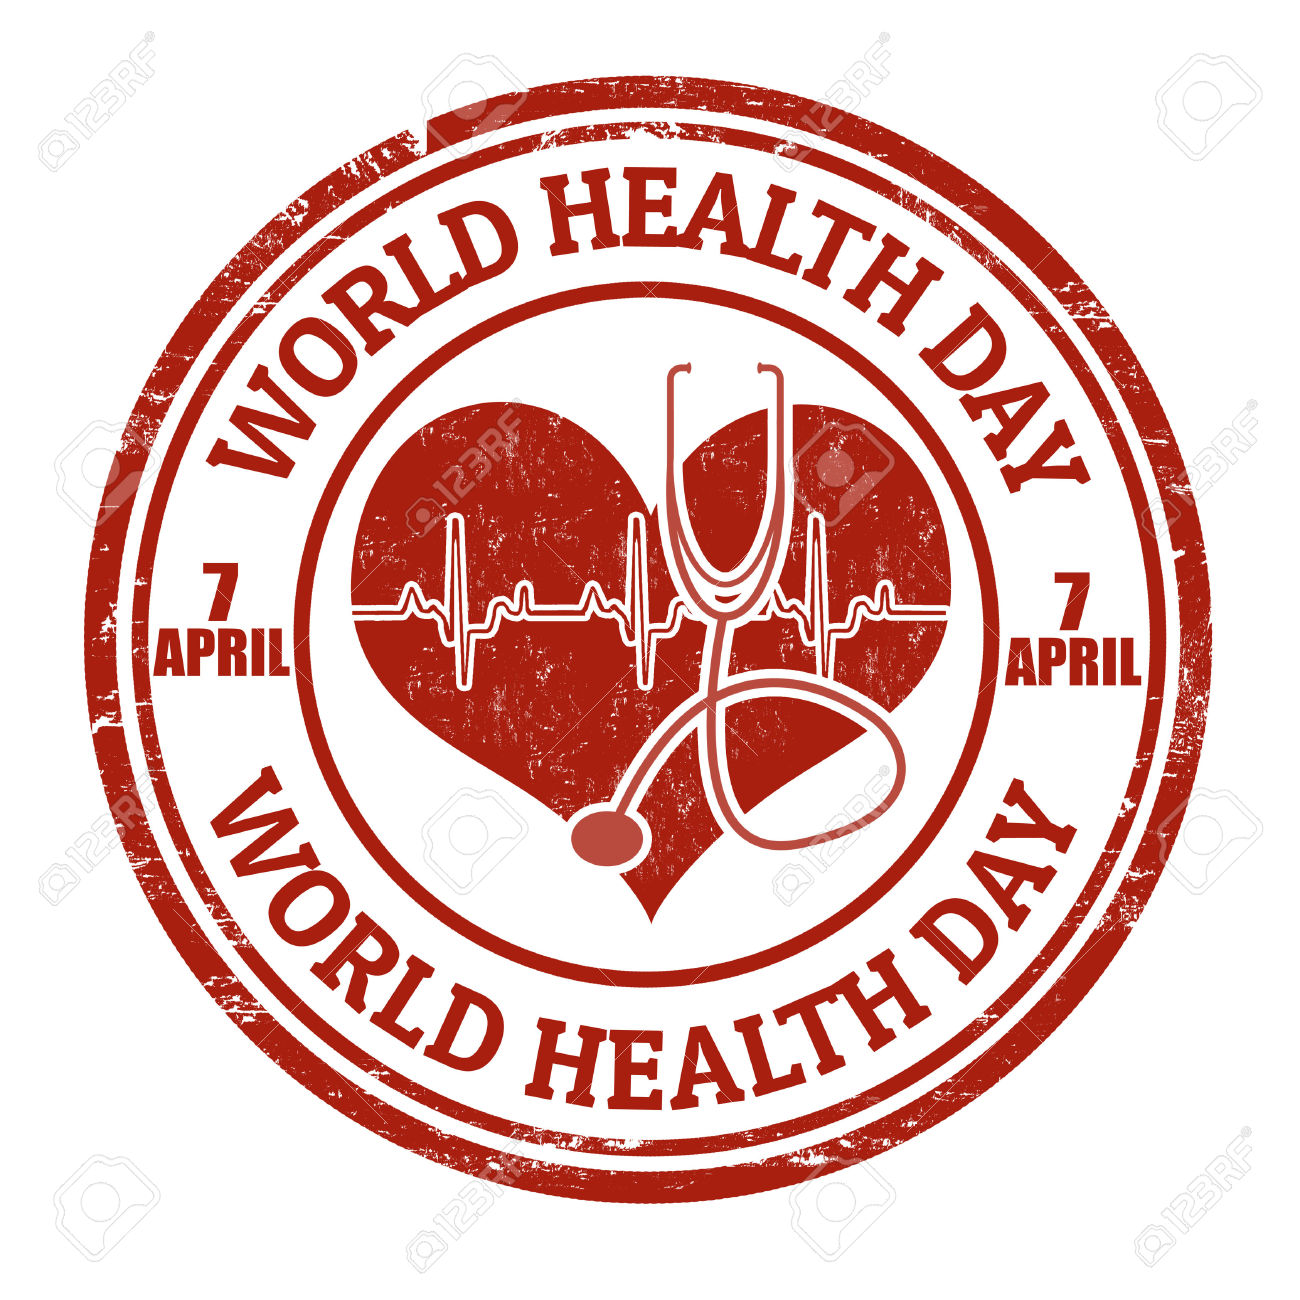 It's World Health Day!